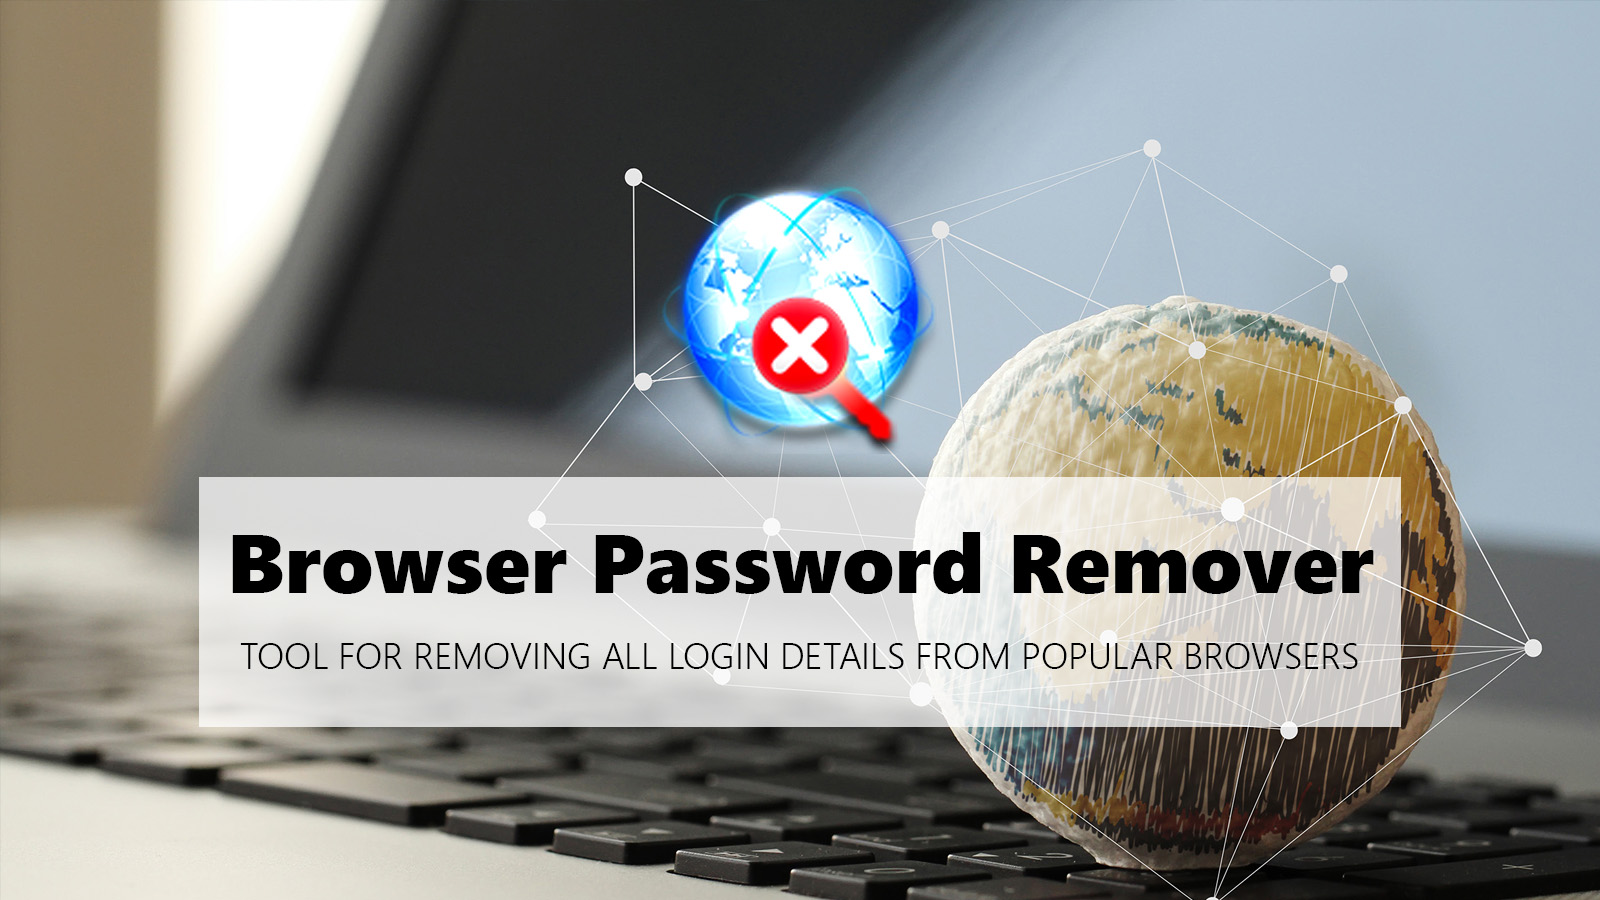 Browser Password Remover